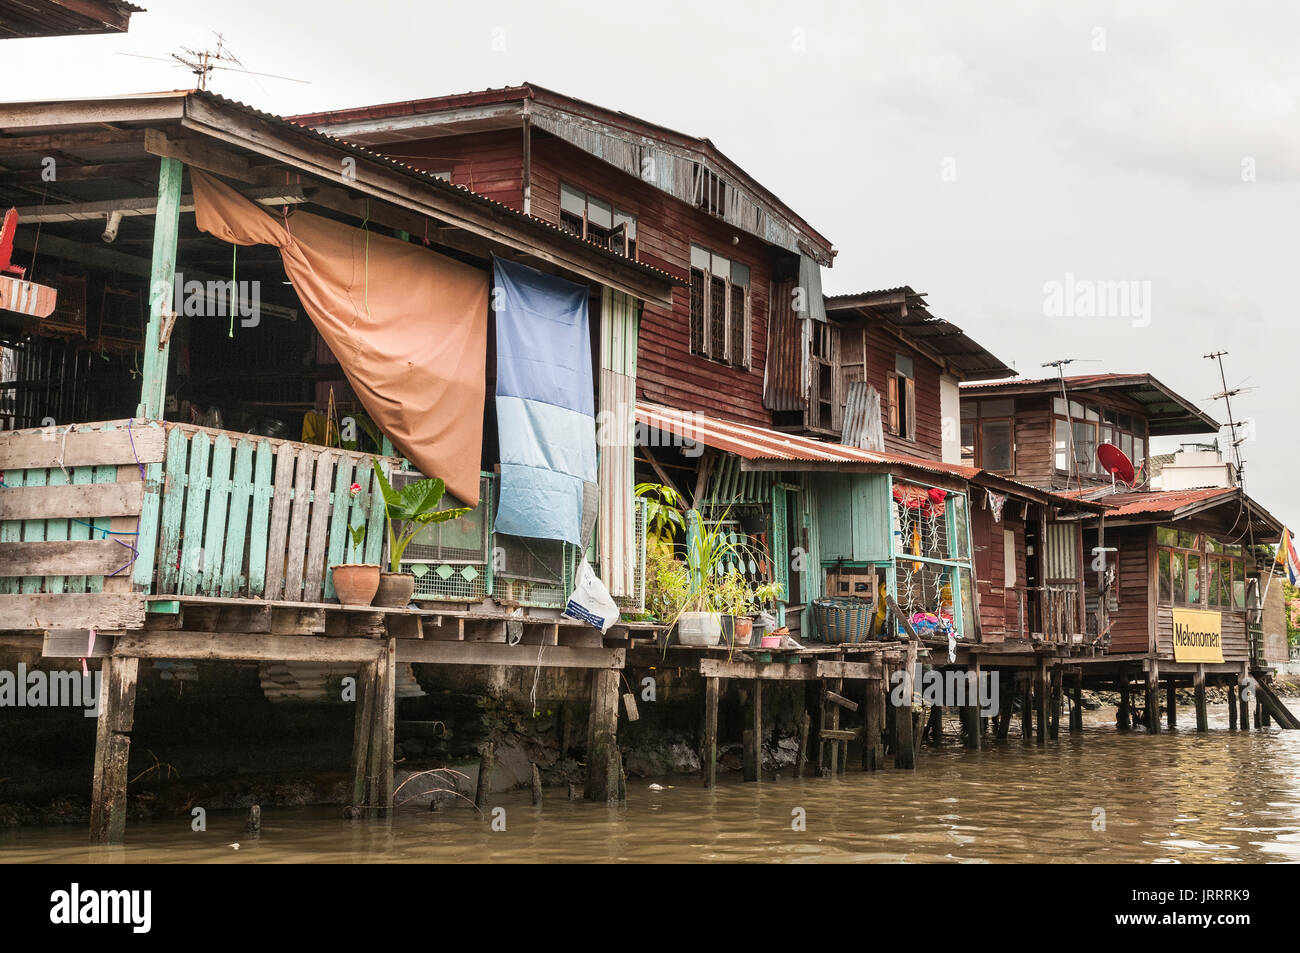 Typical wooden waterside houses on the Khlongs in Thonburi, Bangkok, Thailand - Stock Image